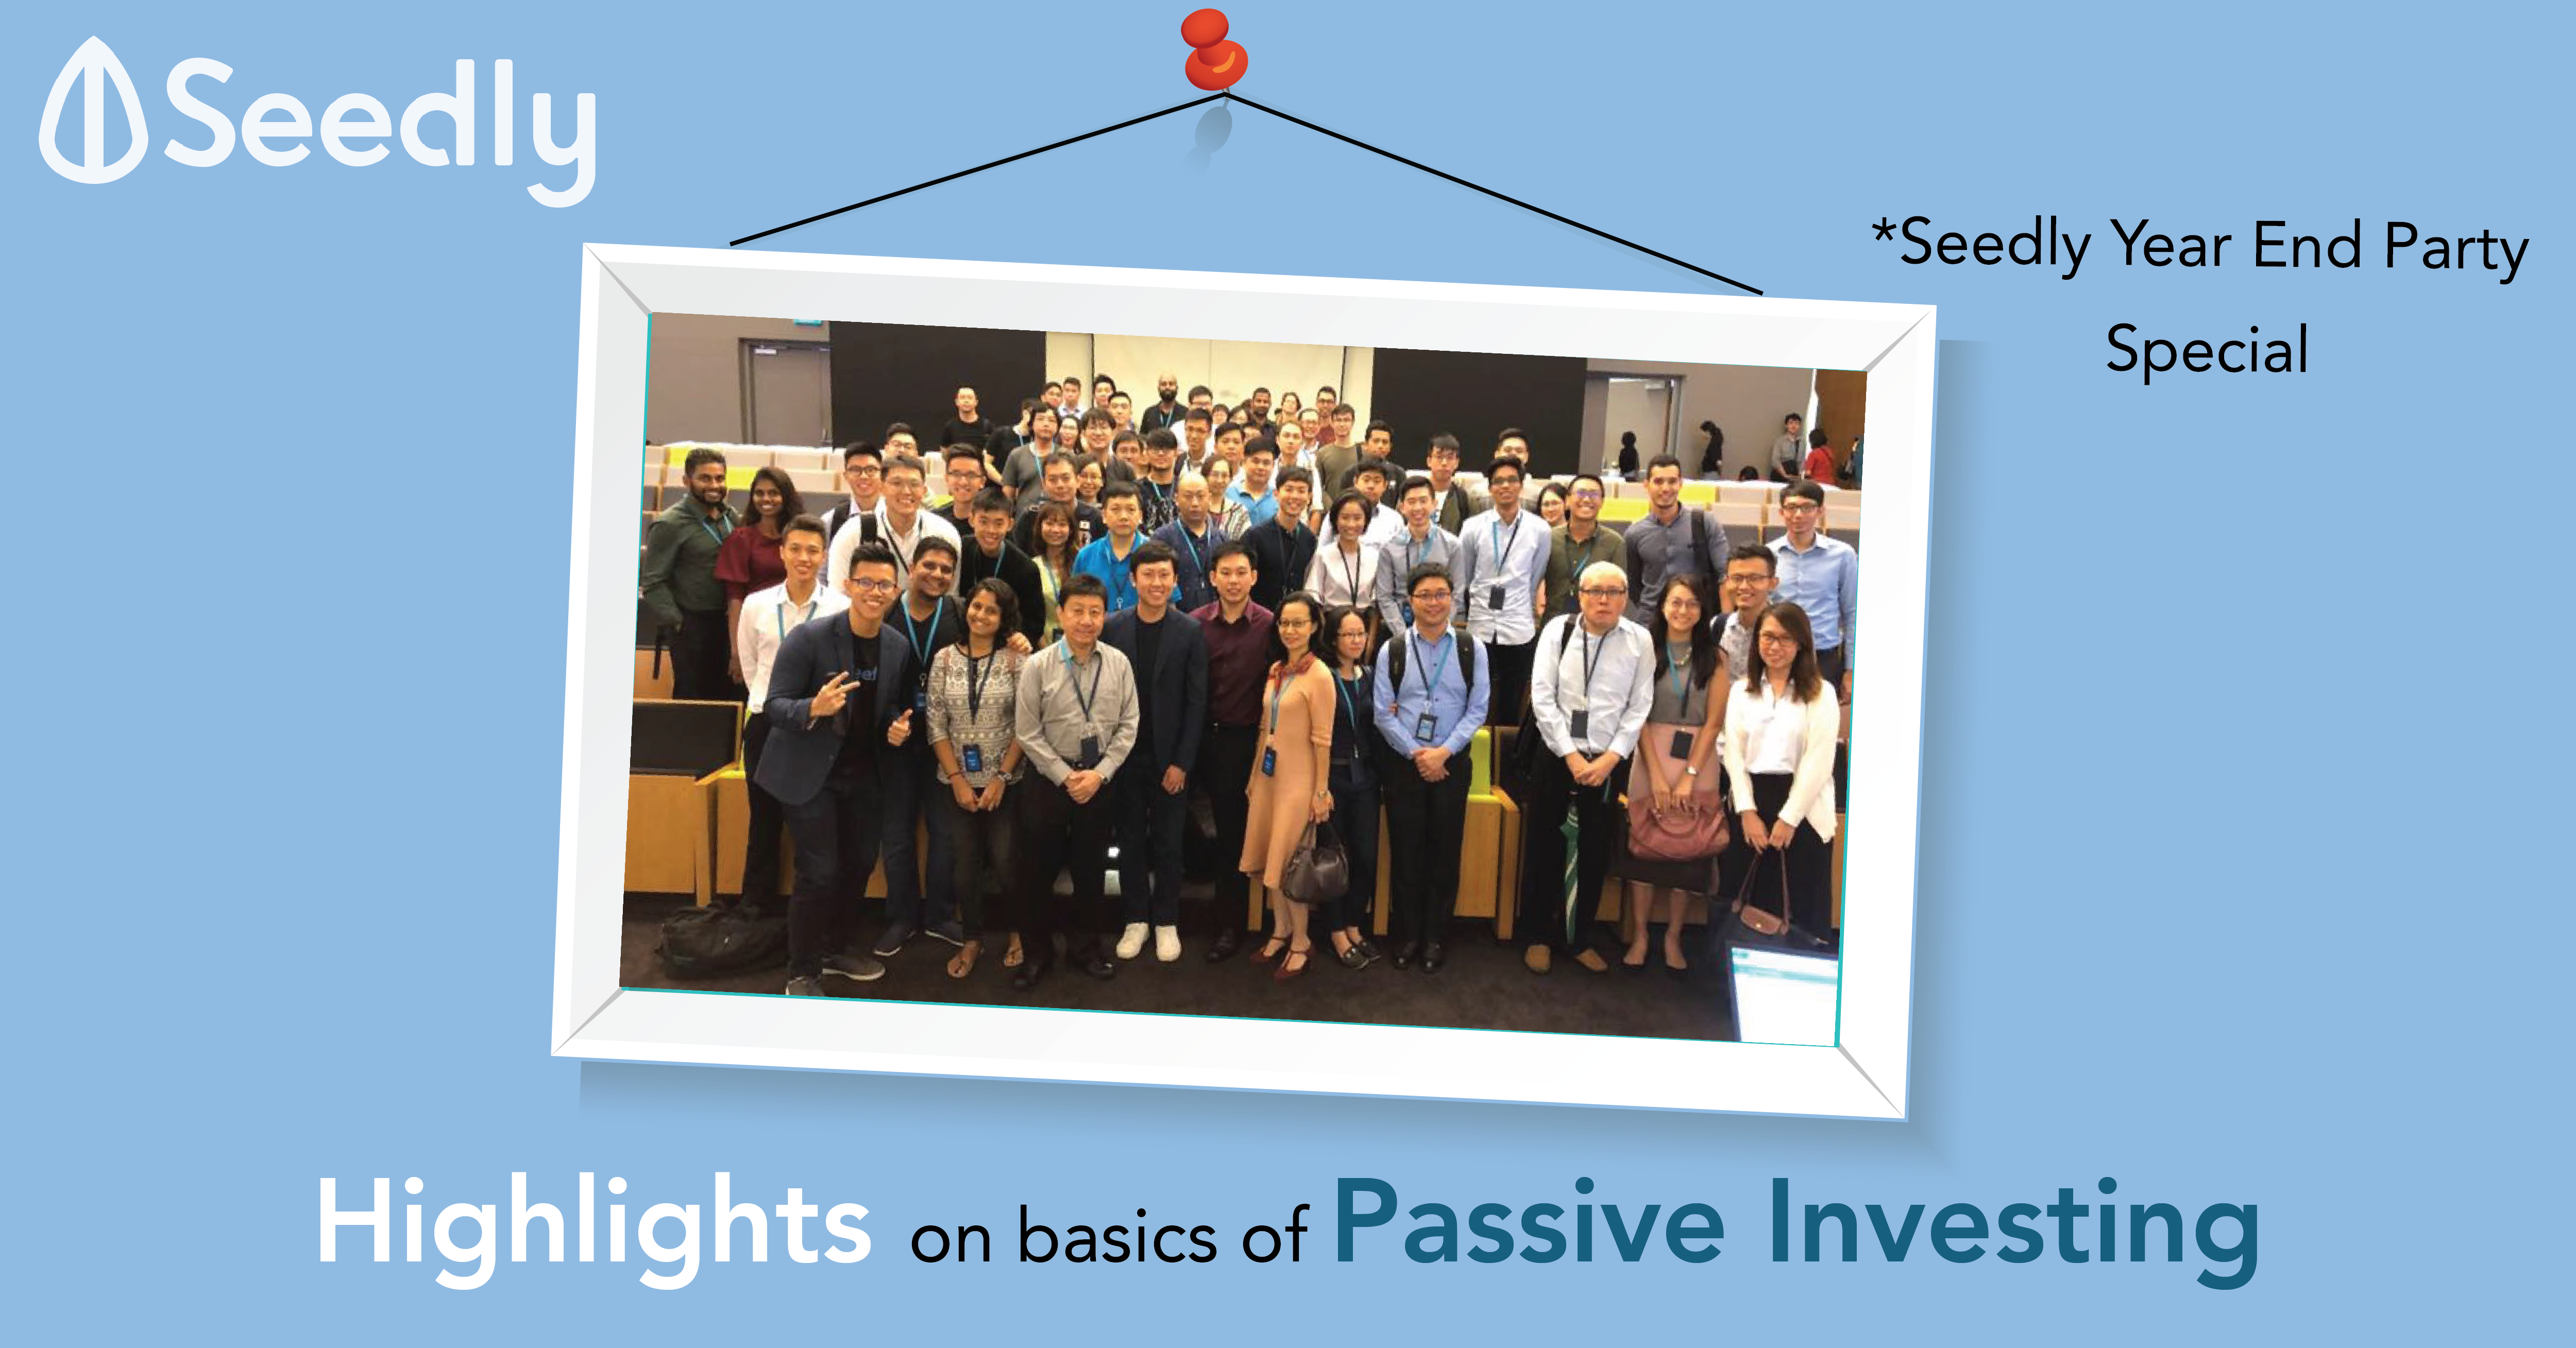 9 Highlights on Basics of Passive Investing At Seedly Year End Party